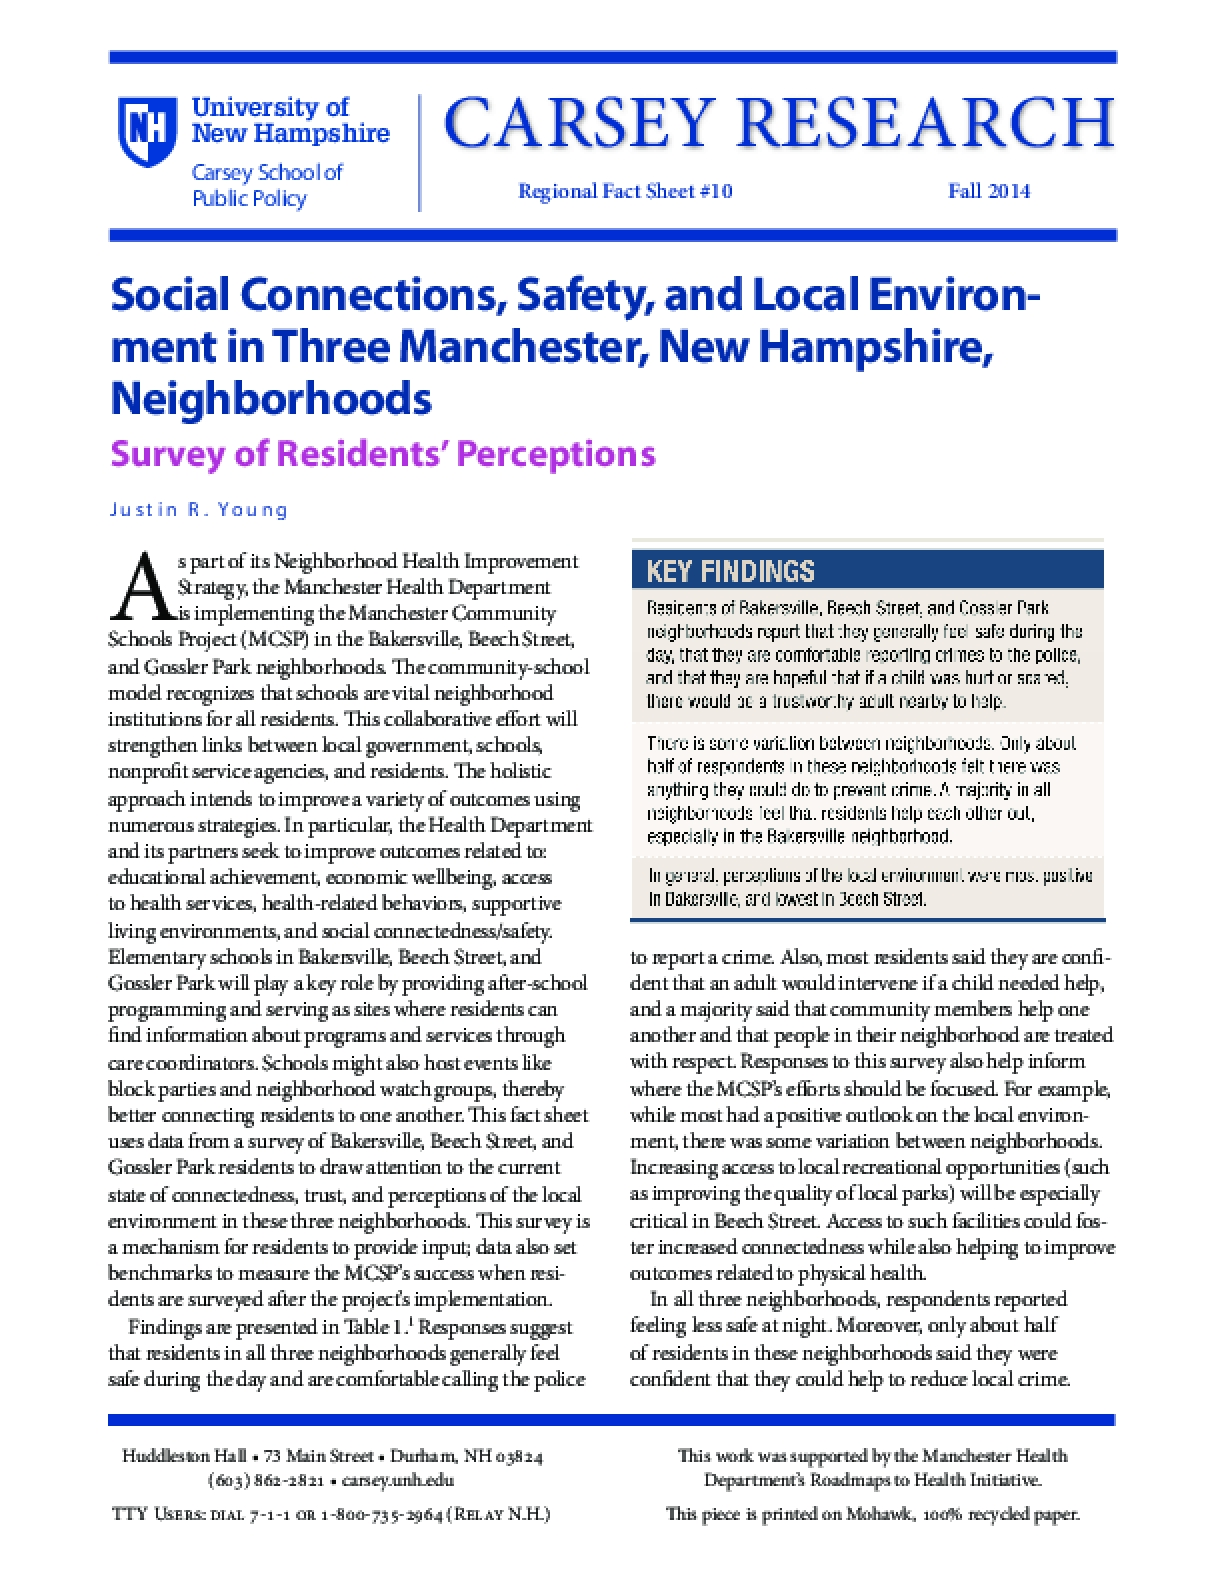 Social Connections, Safety, and Local Environment in Three Manchester, New Hampshire, Neighborhoods